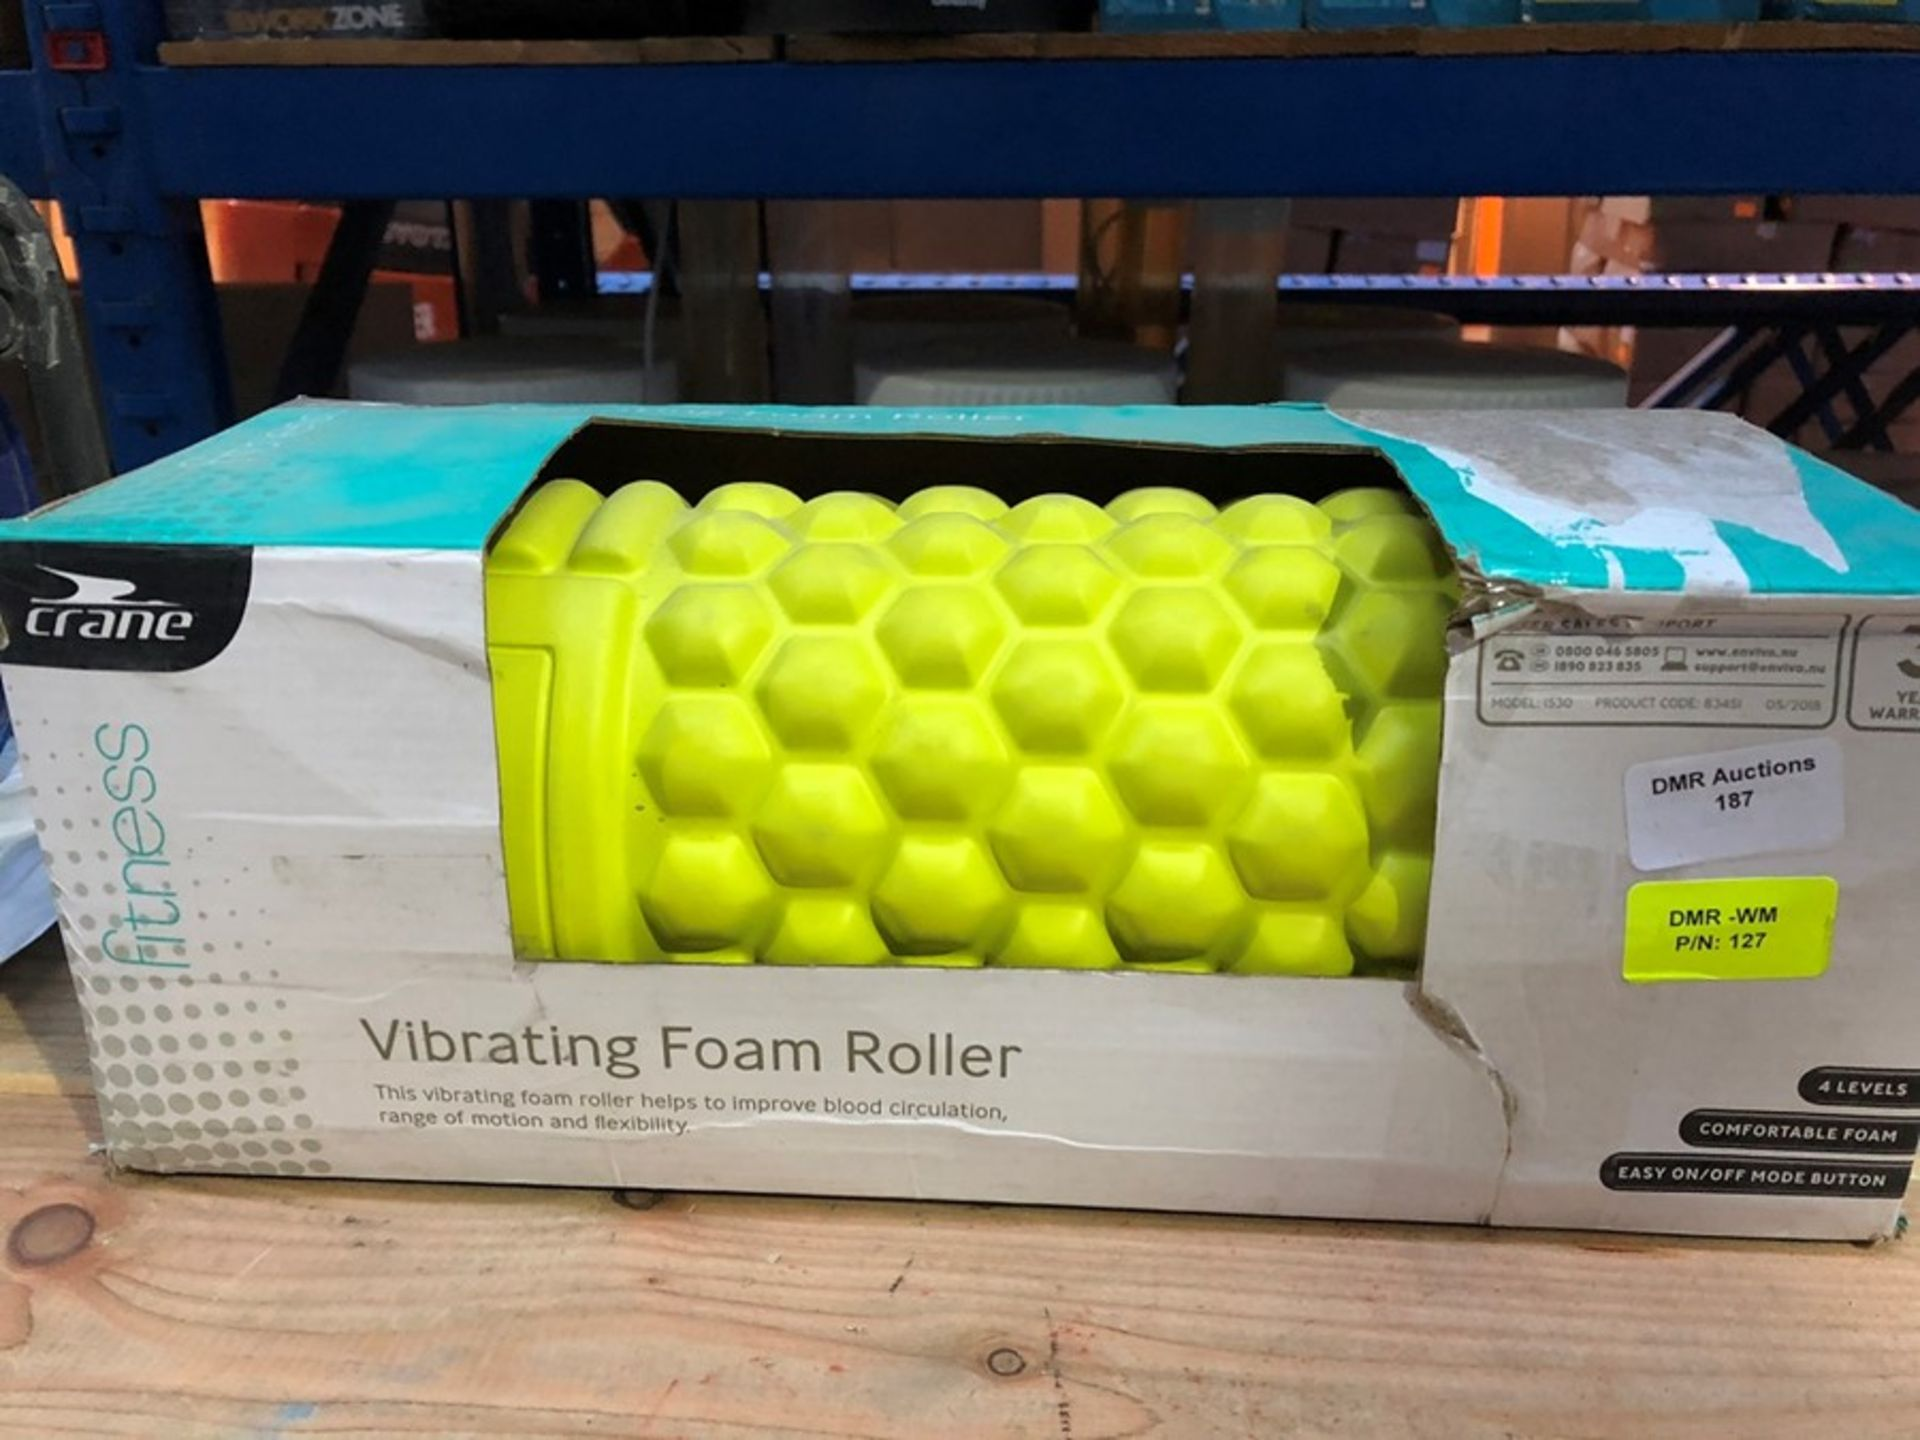 Lot 187 - 1 BOXED CRANE VIBRATING FOAM ROLLER / RRP £24.99 (PUBLIC VIEWING AVAILABLE)